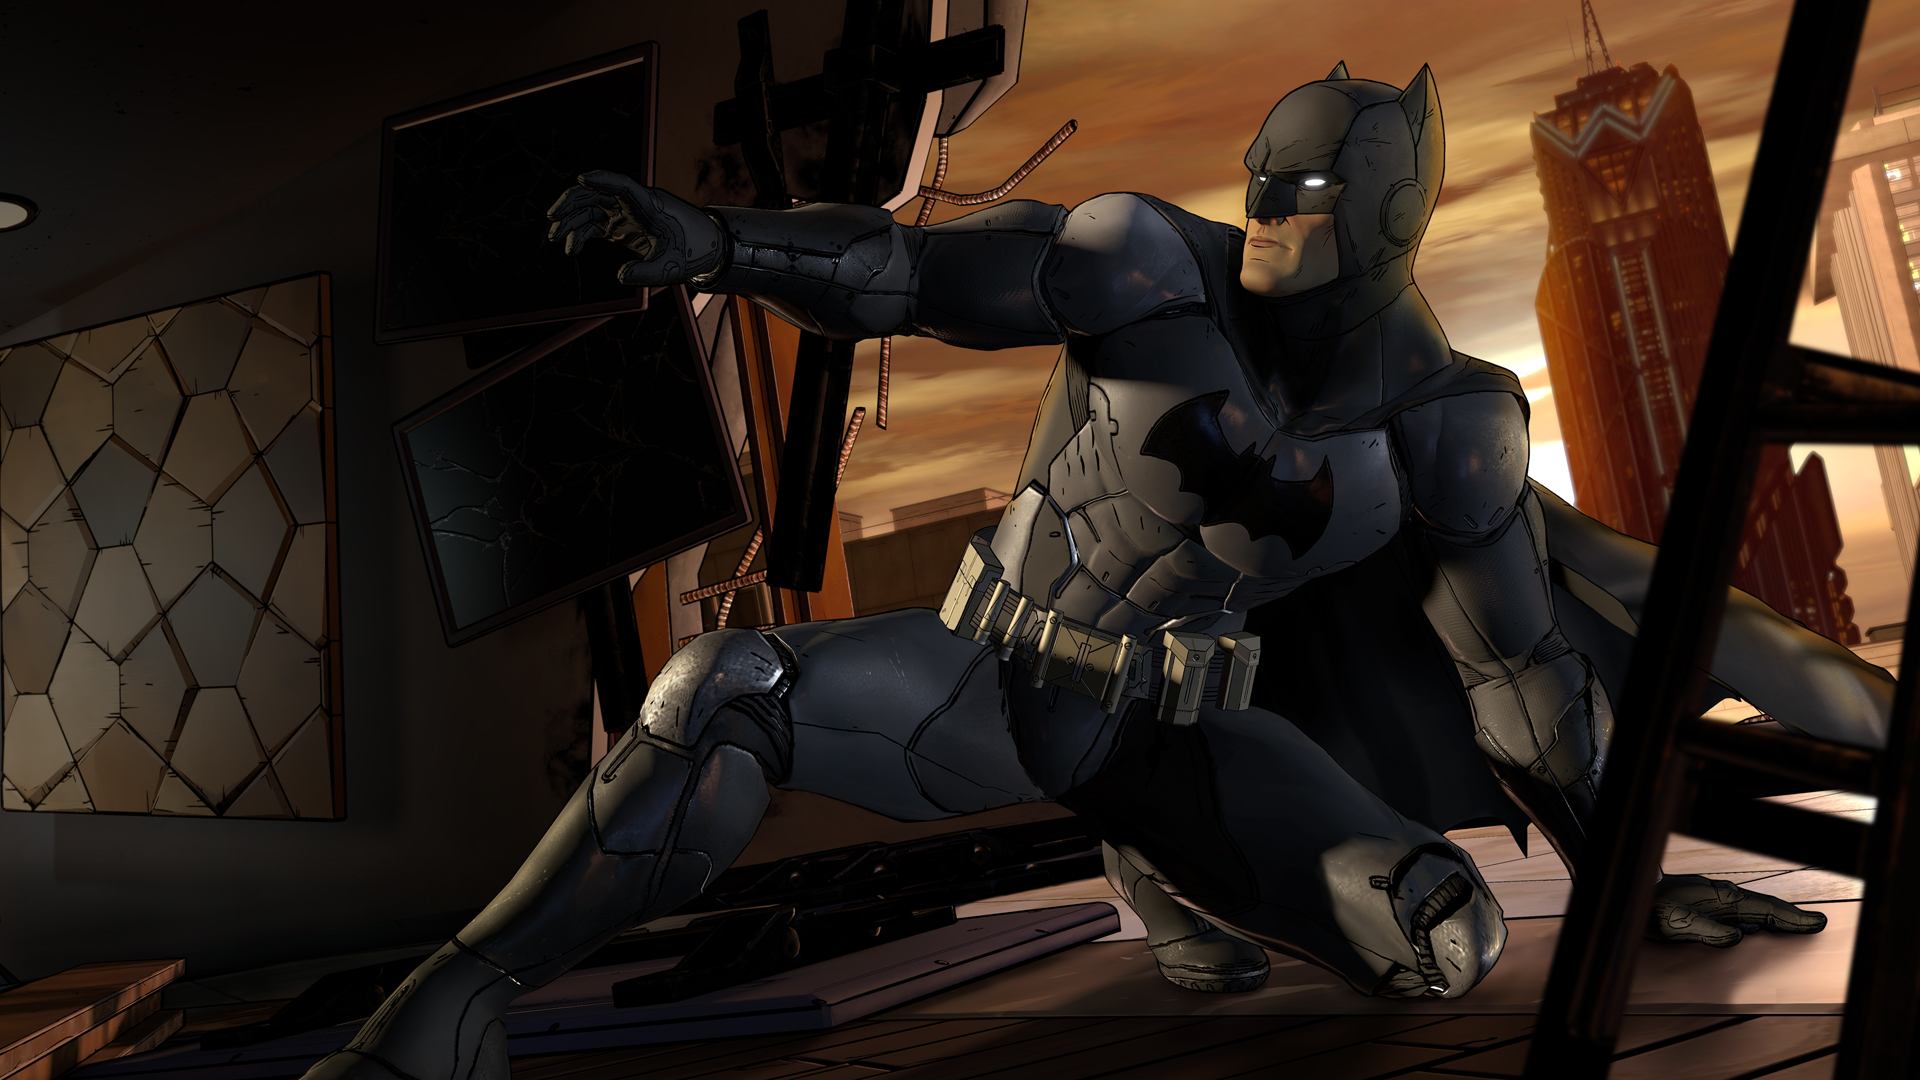 Telltale's Third Batman Episode Coming Later This Month